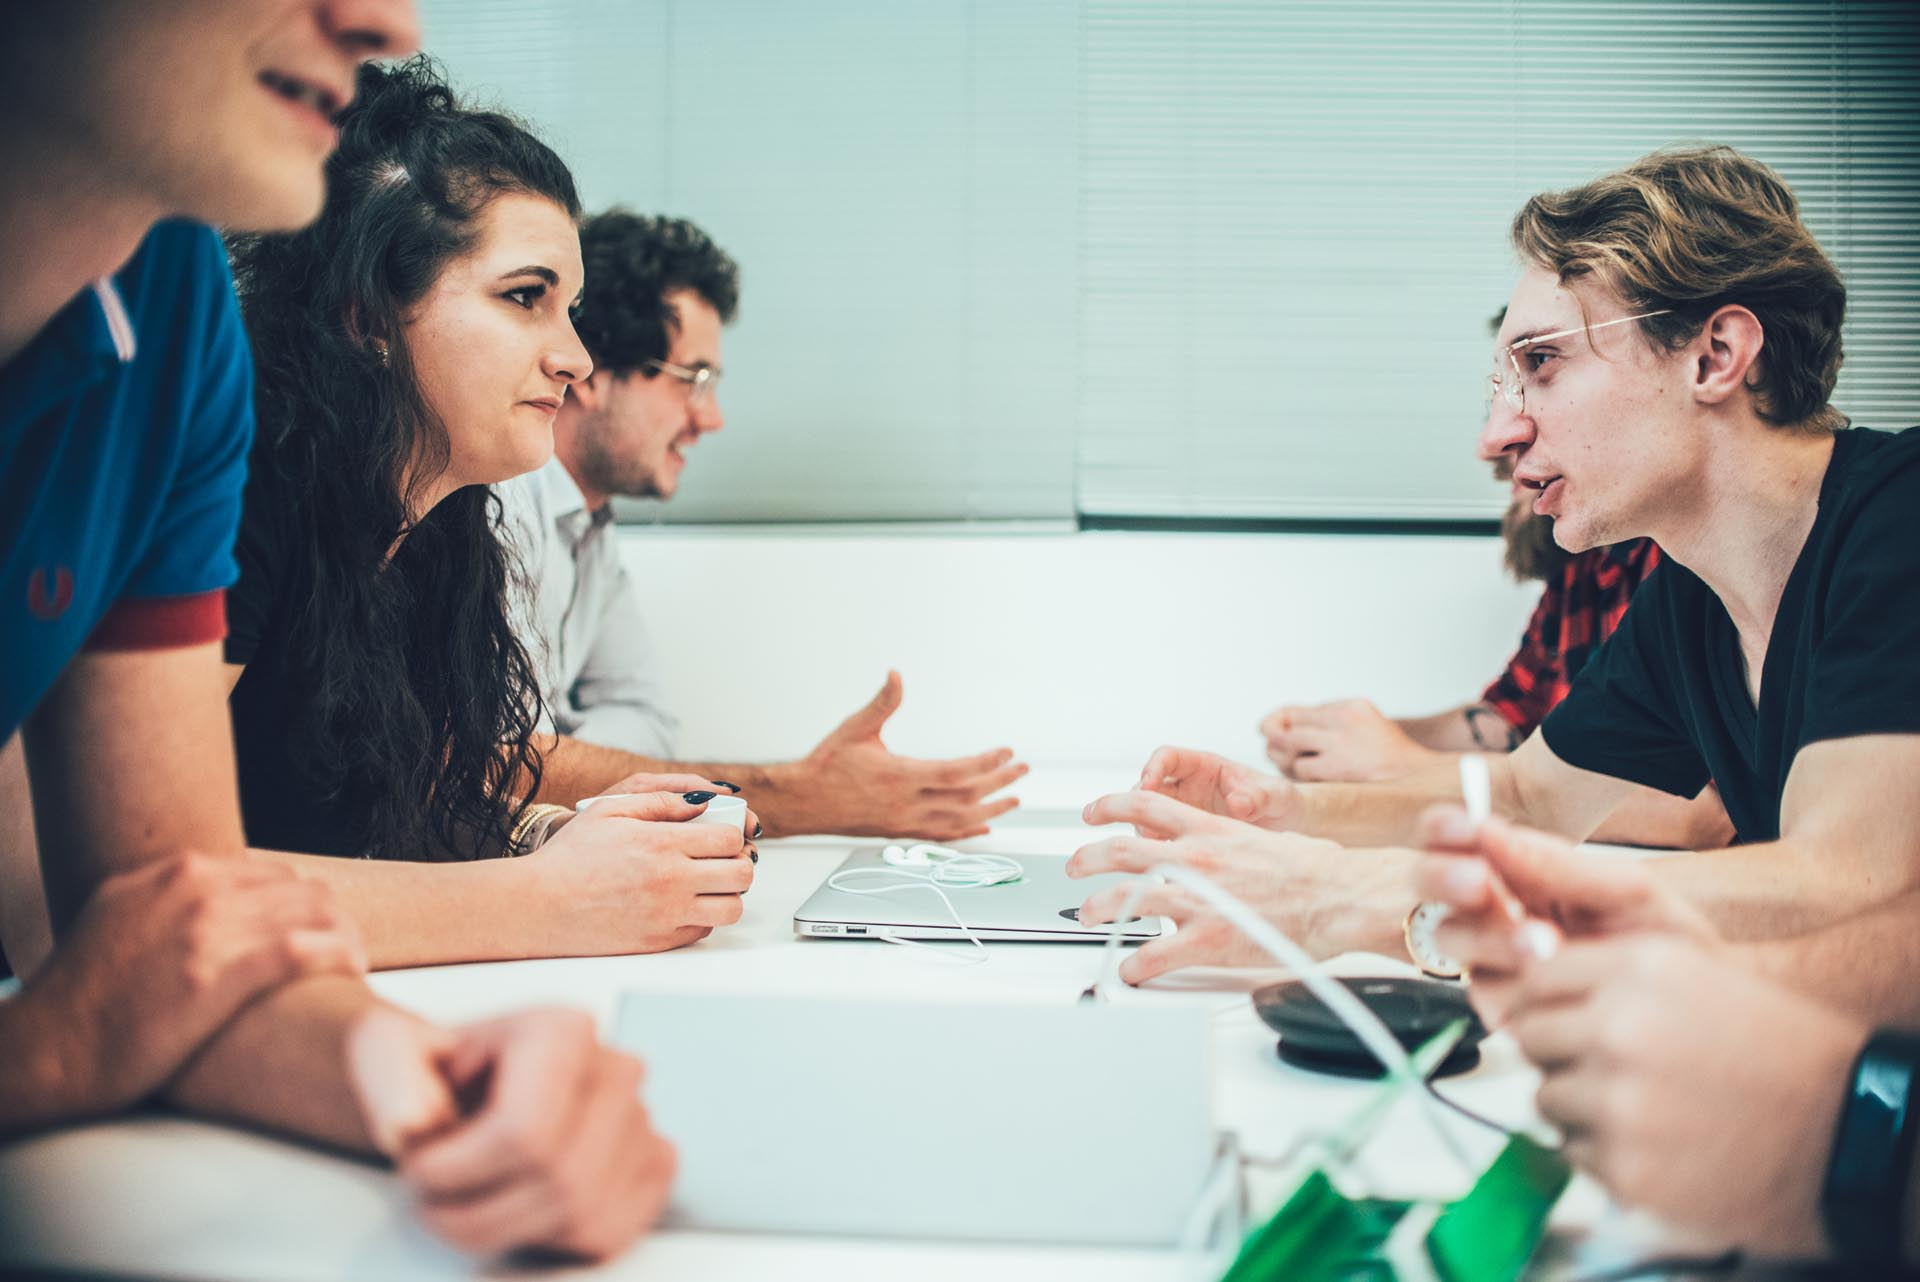 The main differences between Product Manager and Product Owner